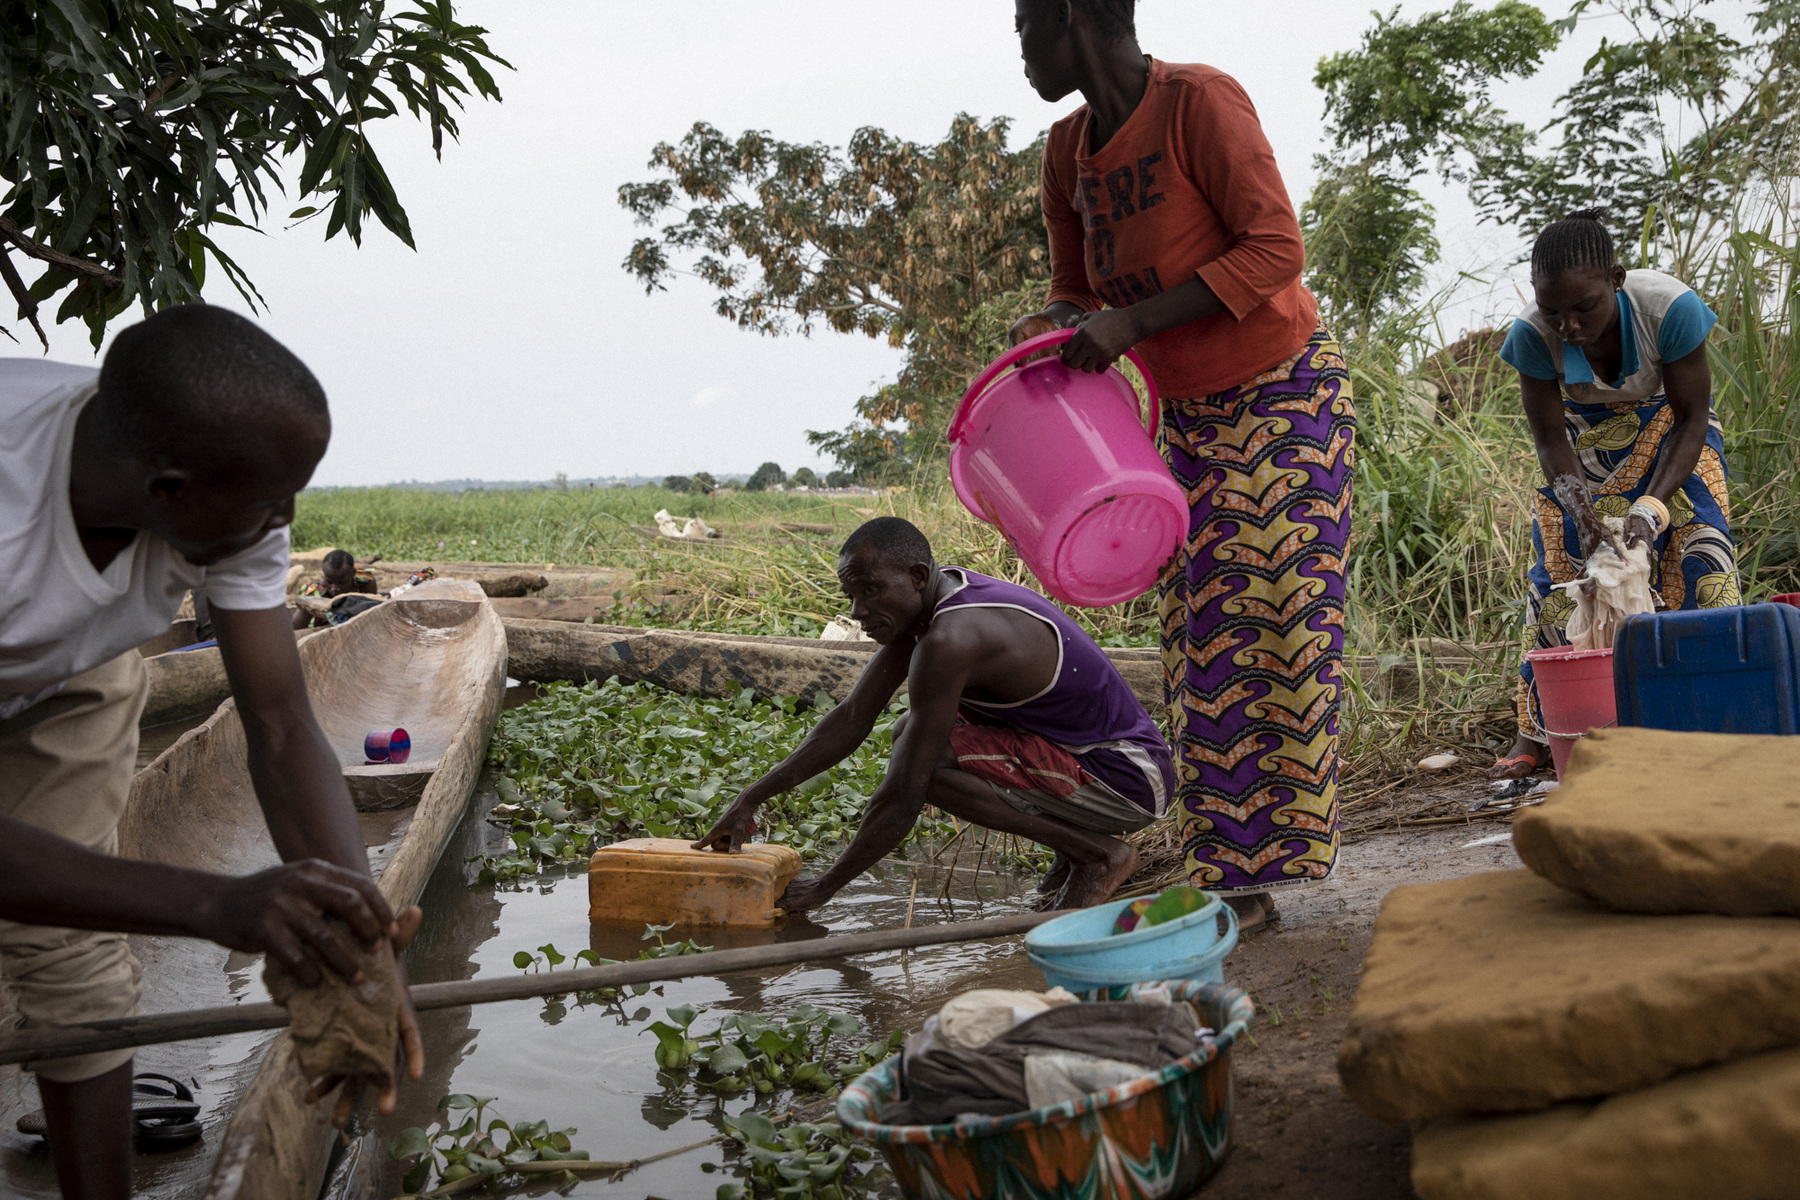 Adrienne Surprenant - Grâce à Dieu, the son of Île aux Singe's chief, is cleaning a boat next to people taking the Ubangi River's water to wash clothes and utensils. Twice a day, they receive a bucket of drinkable water. November 4, 2019. Bangui, the Central African Republic.